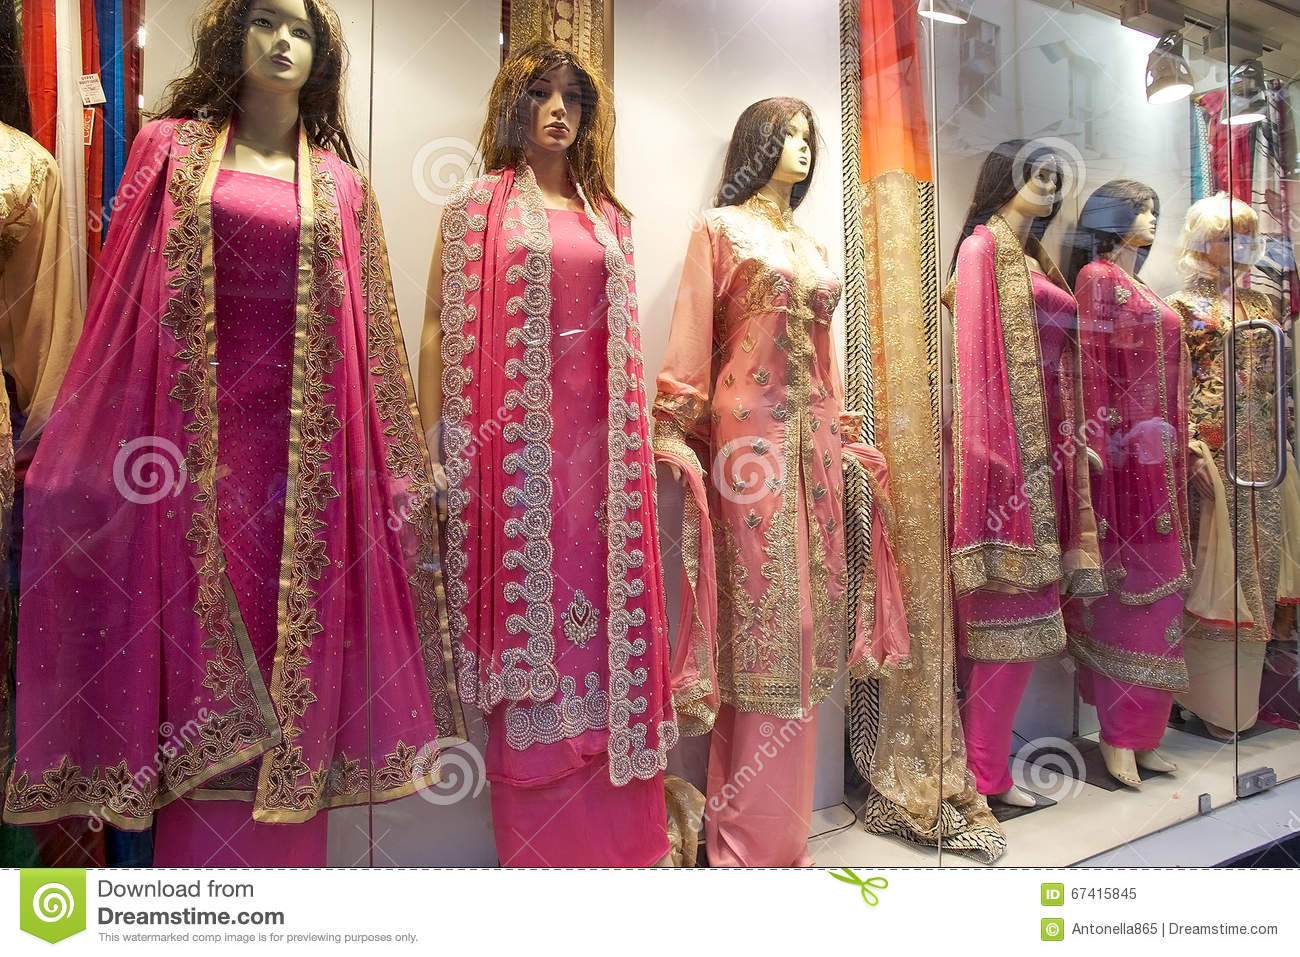 Indian Clothes For Sale Near The New Market Kolkata India Stock Image Image Of Destination Calcutta 67415845